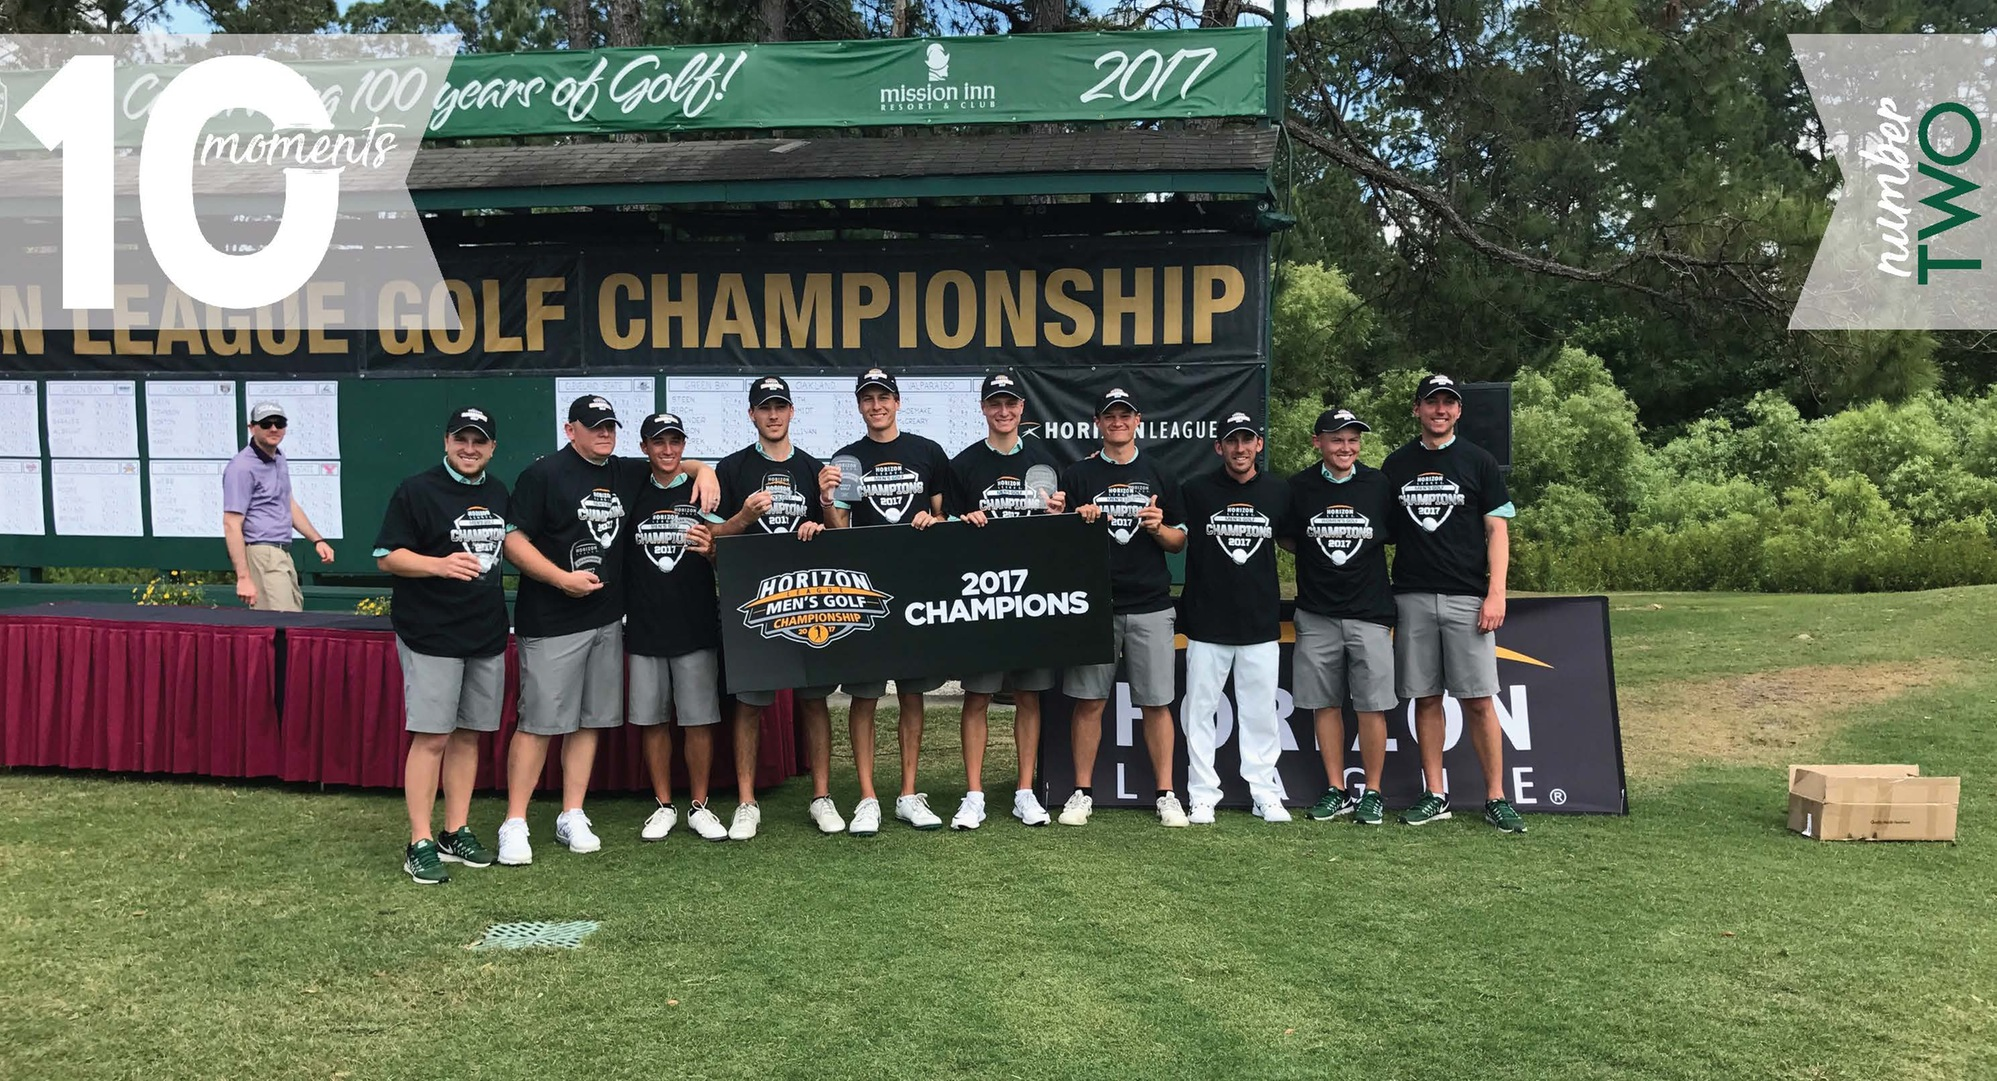 2016-17 CSU Athletics Top 10 Moments | #2 Men's Golf Wins 4th Straight League Title